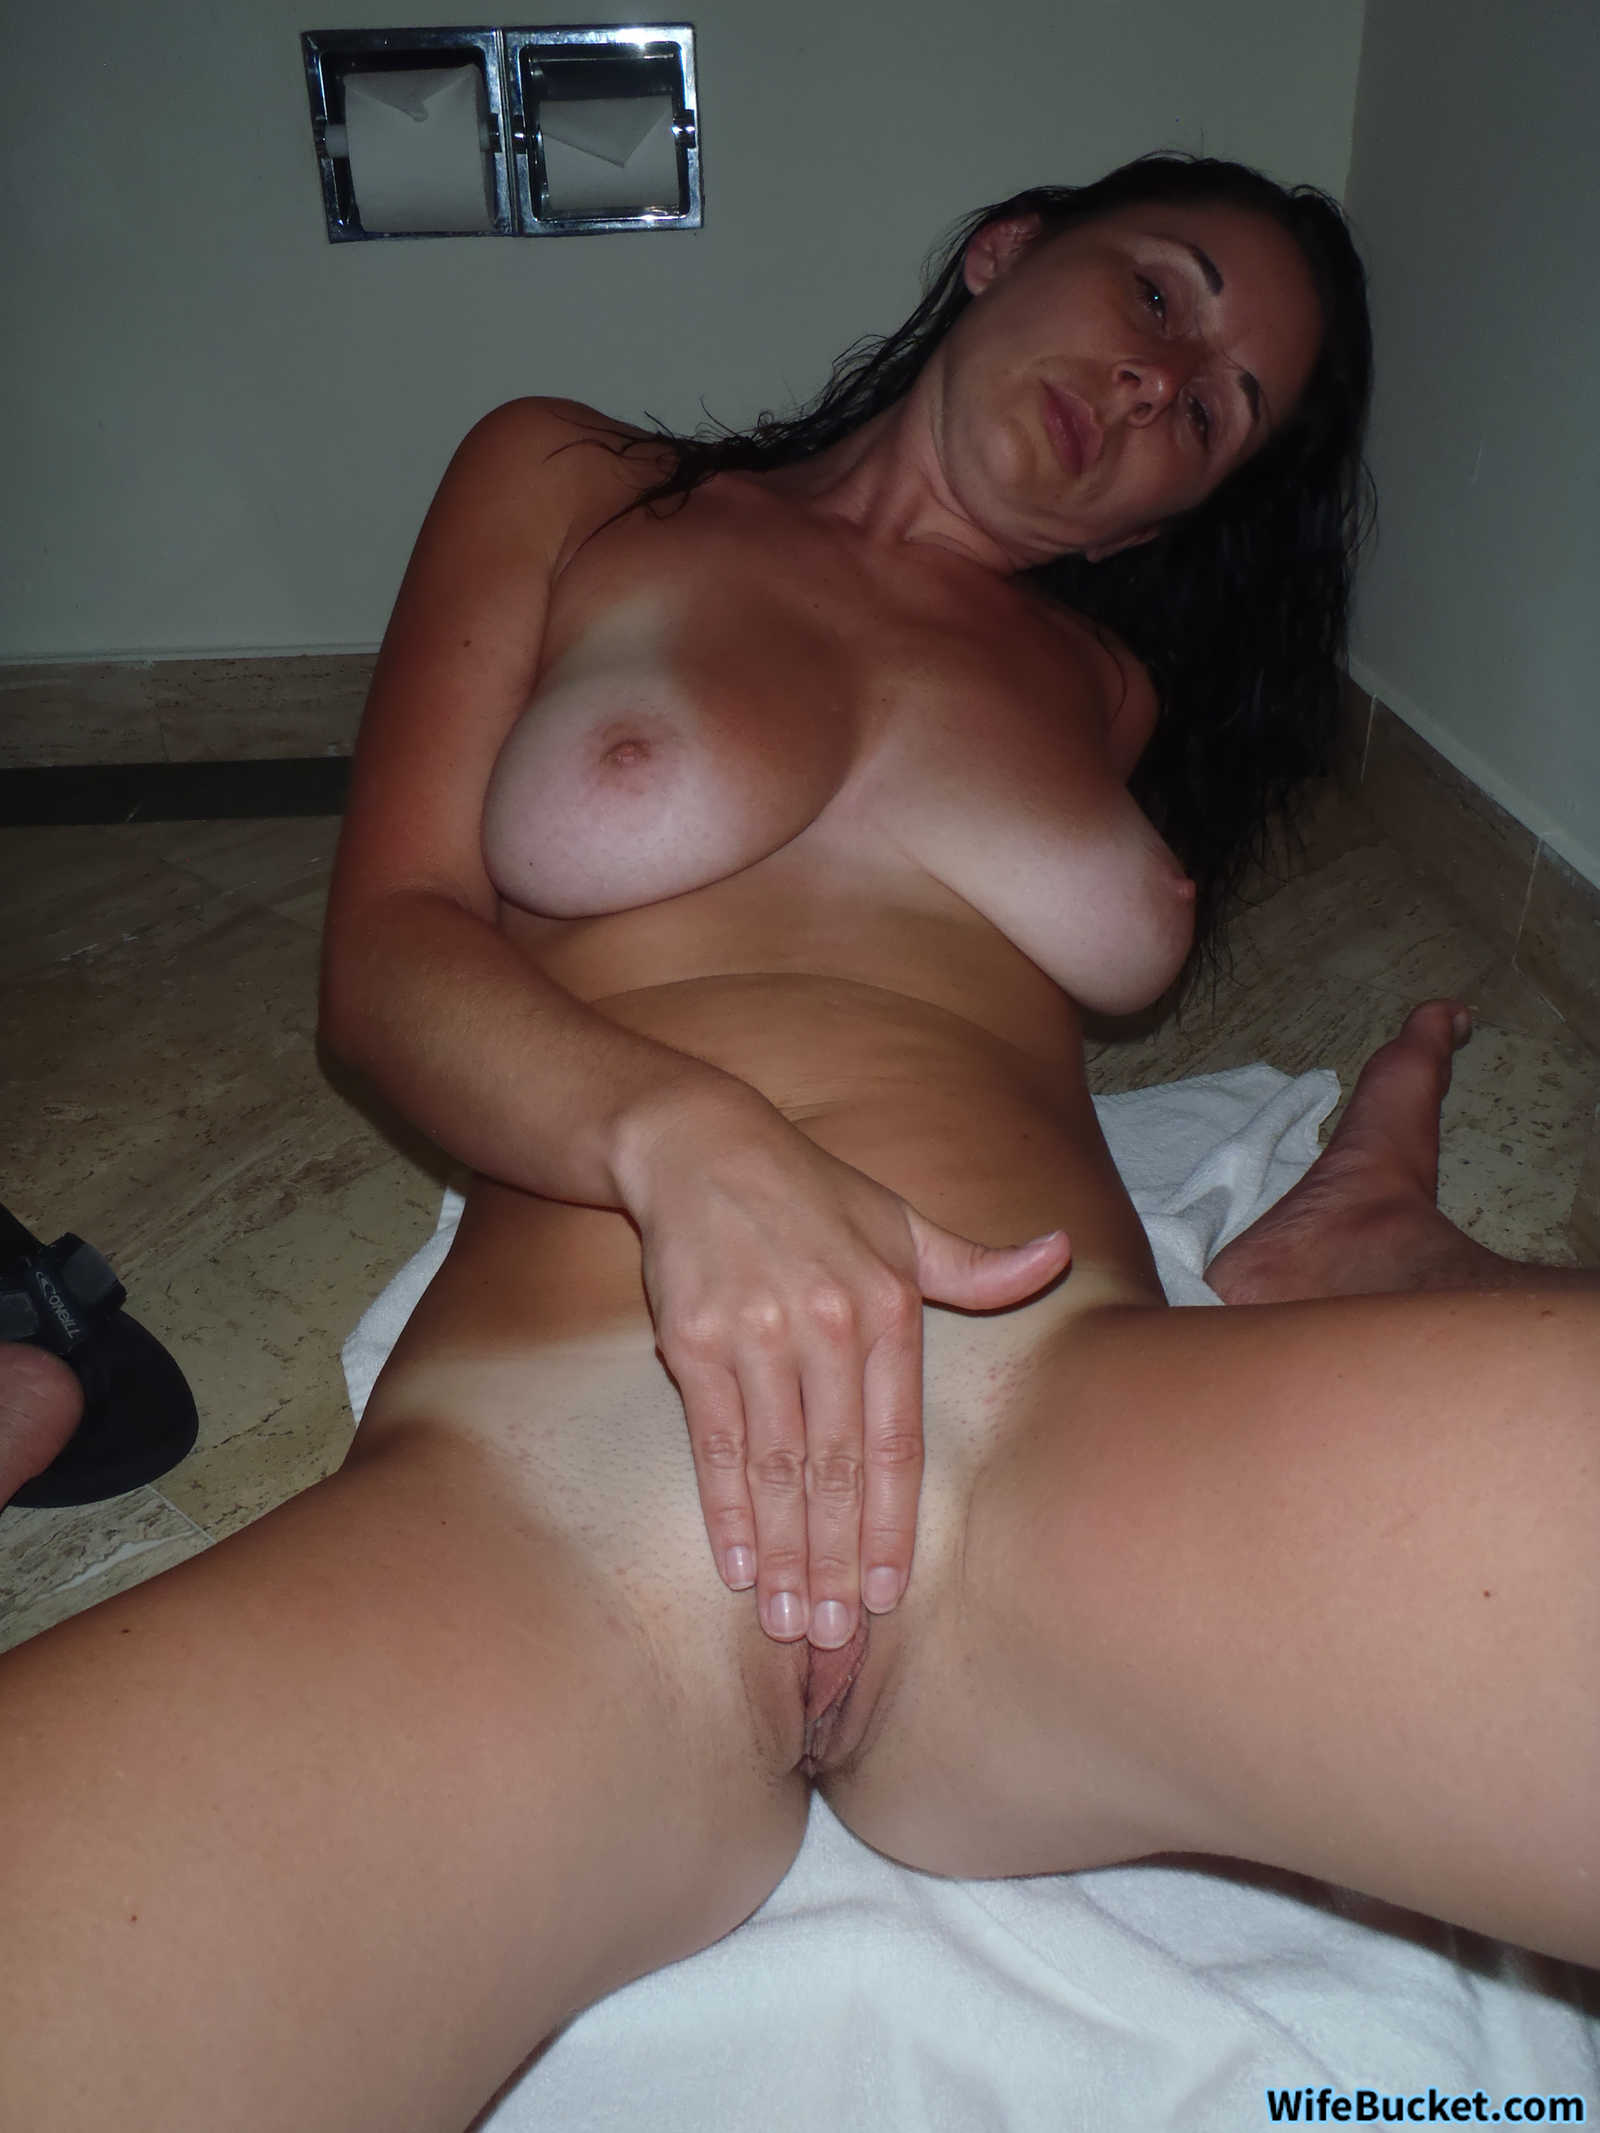 Wifebucket  Rich Wife First Ever Homemade Nudes-8143